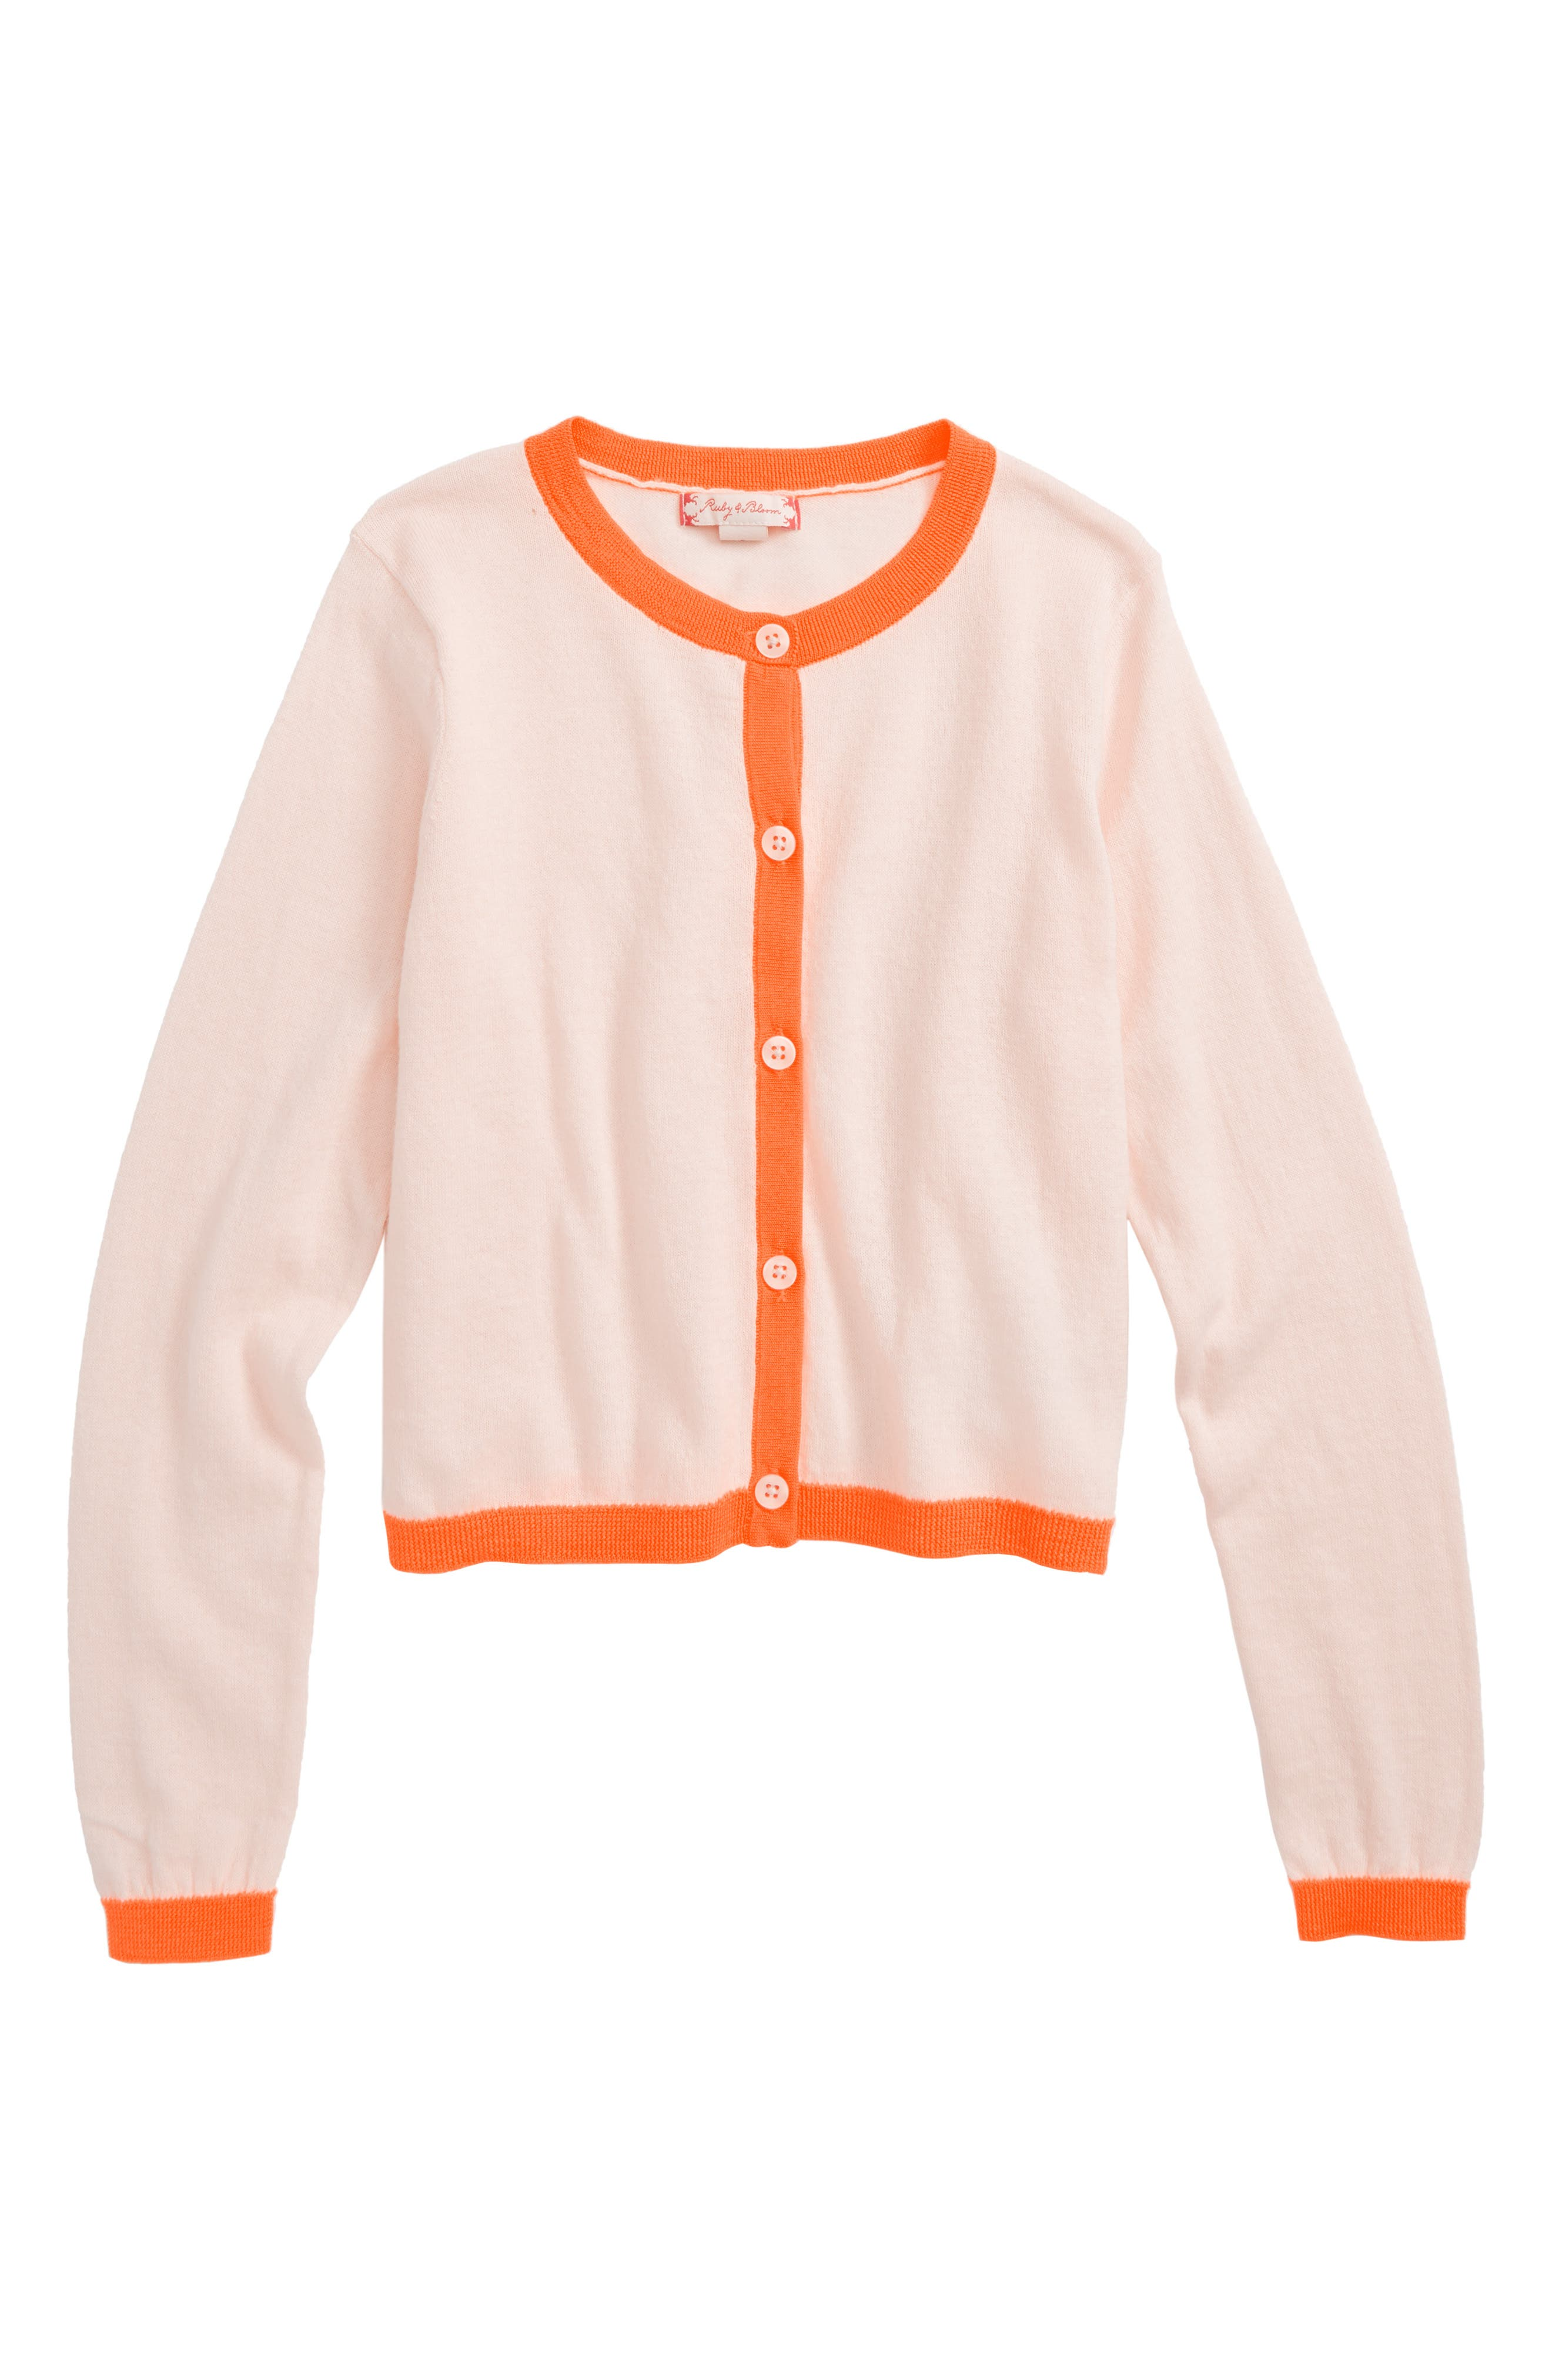 Main Image - Ruby & Bloom Contrast Trim Cardigan (Toddler Girls, Little Girls & Big Girls)